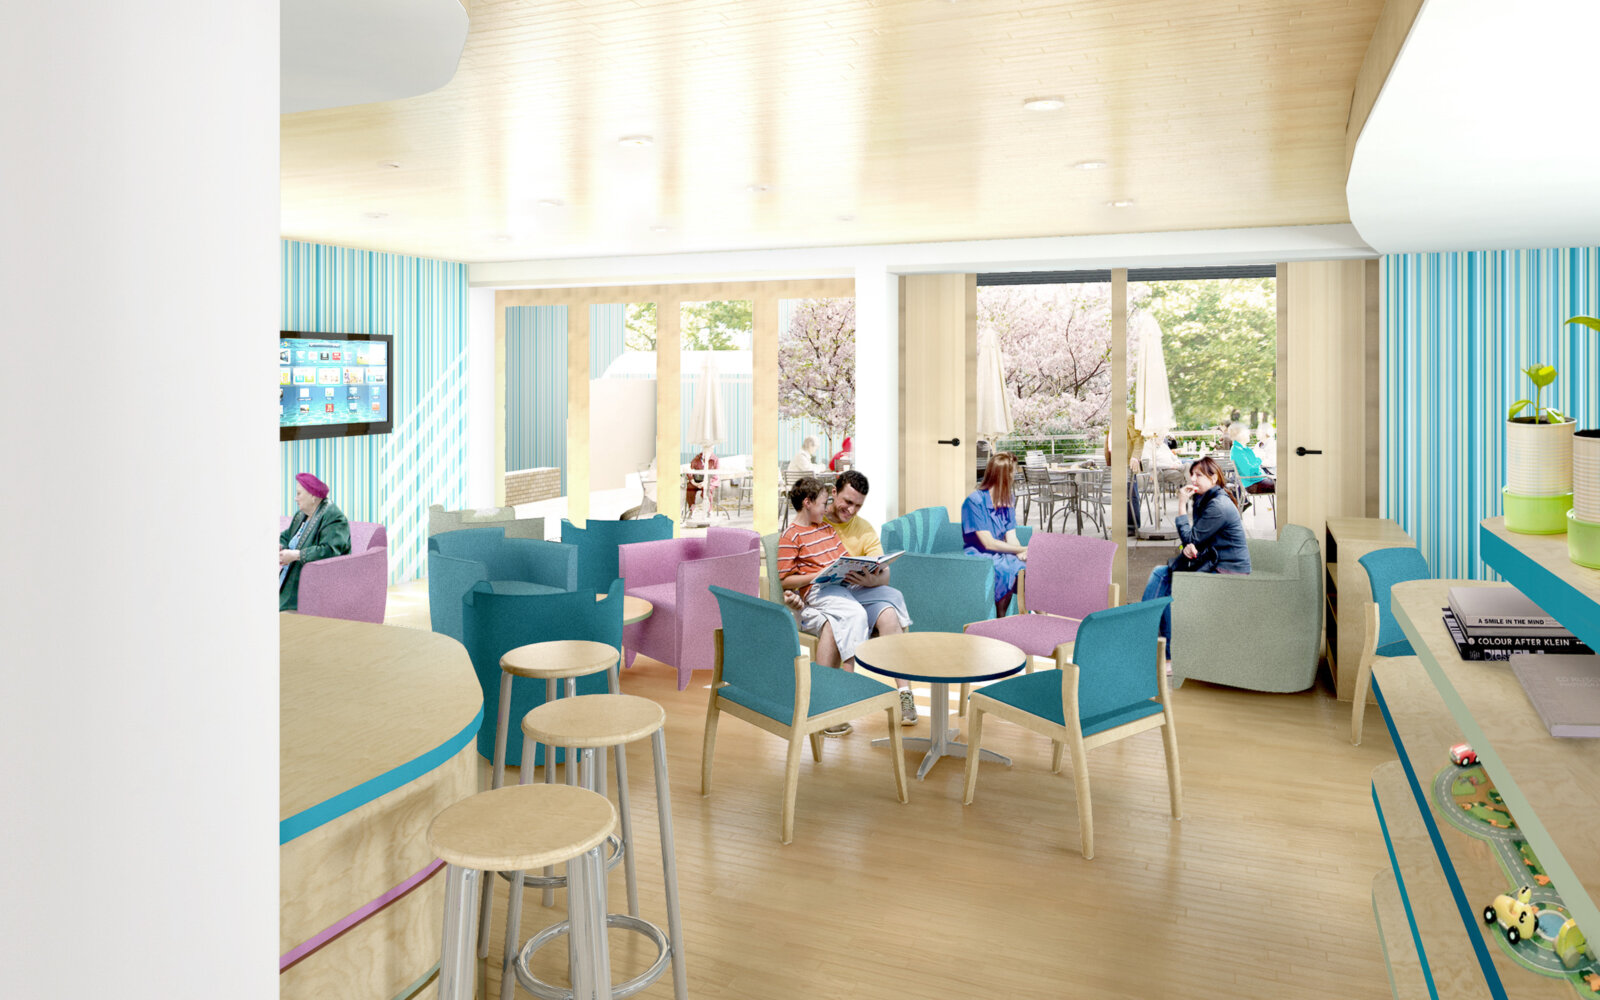 The Cove Macmillan Cancer Support Centre waiting area CGI